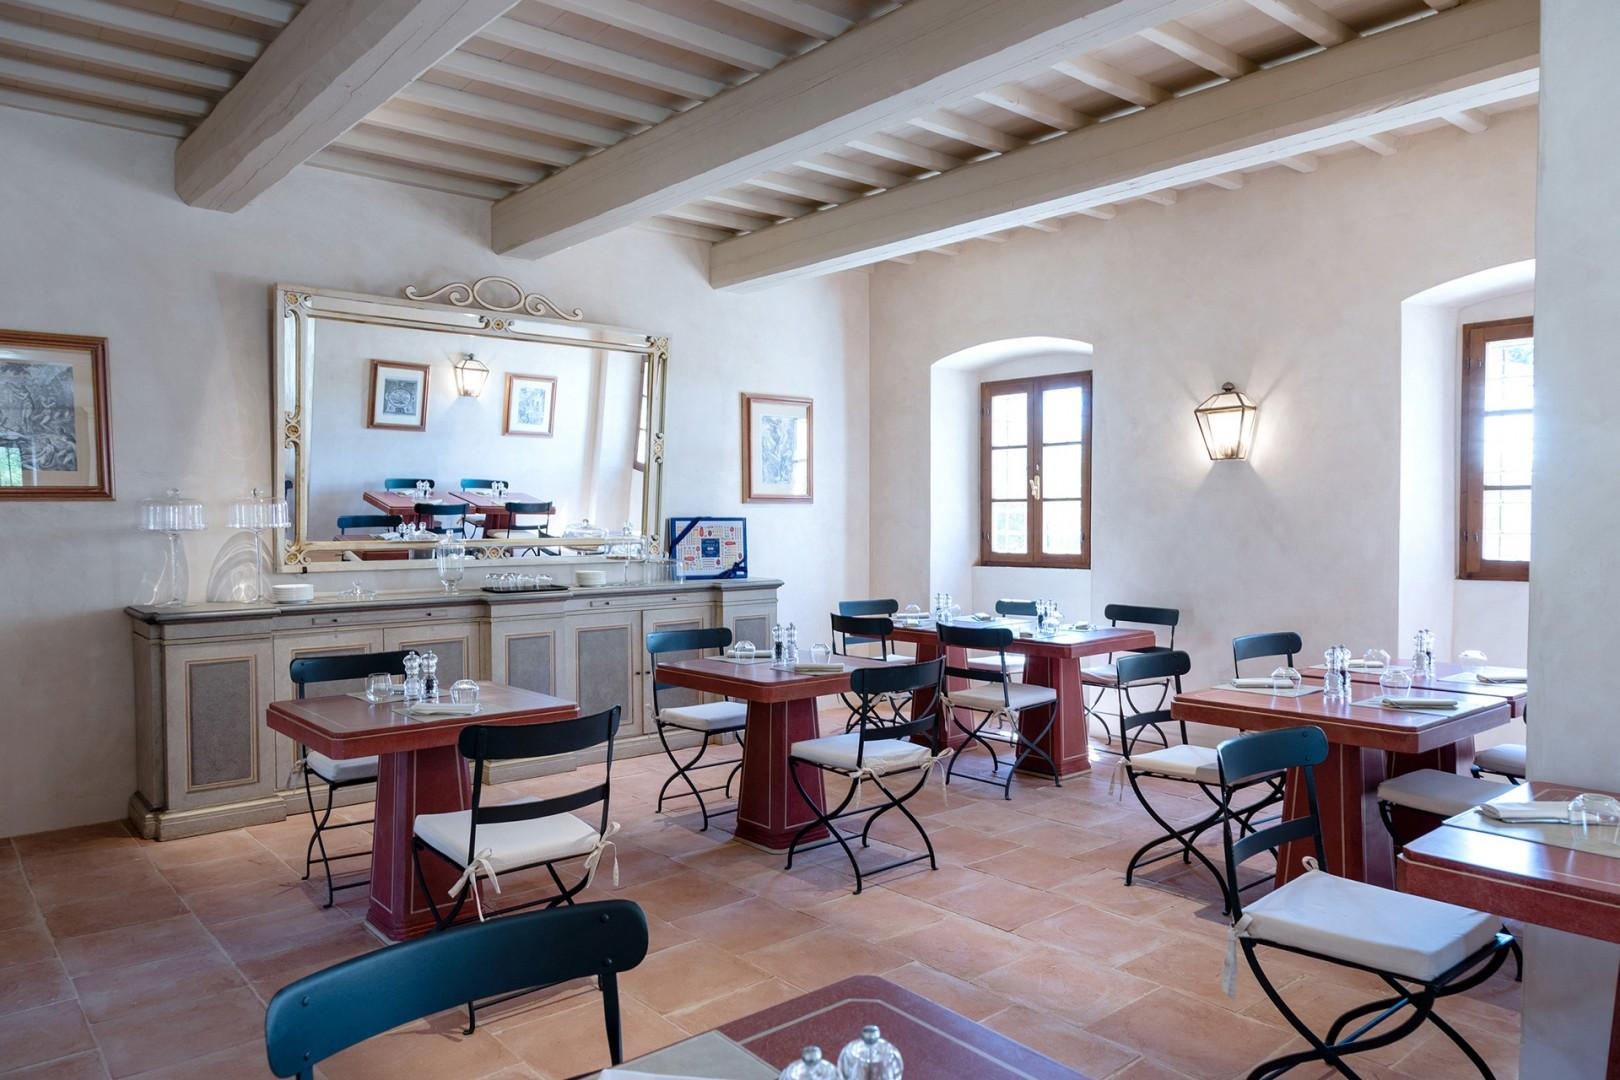 The on-site bistro serves delicious Tuscan specialties in a casual atmosphere.